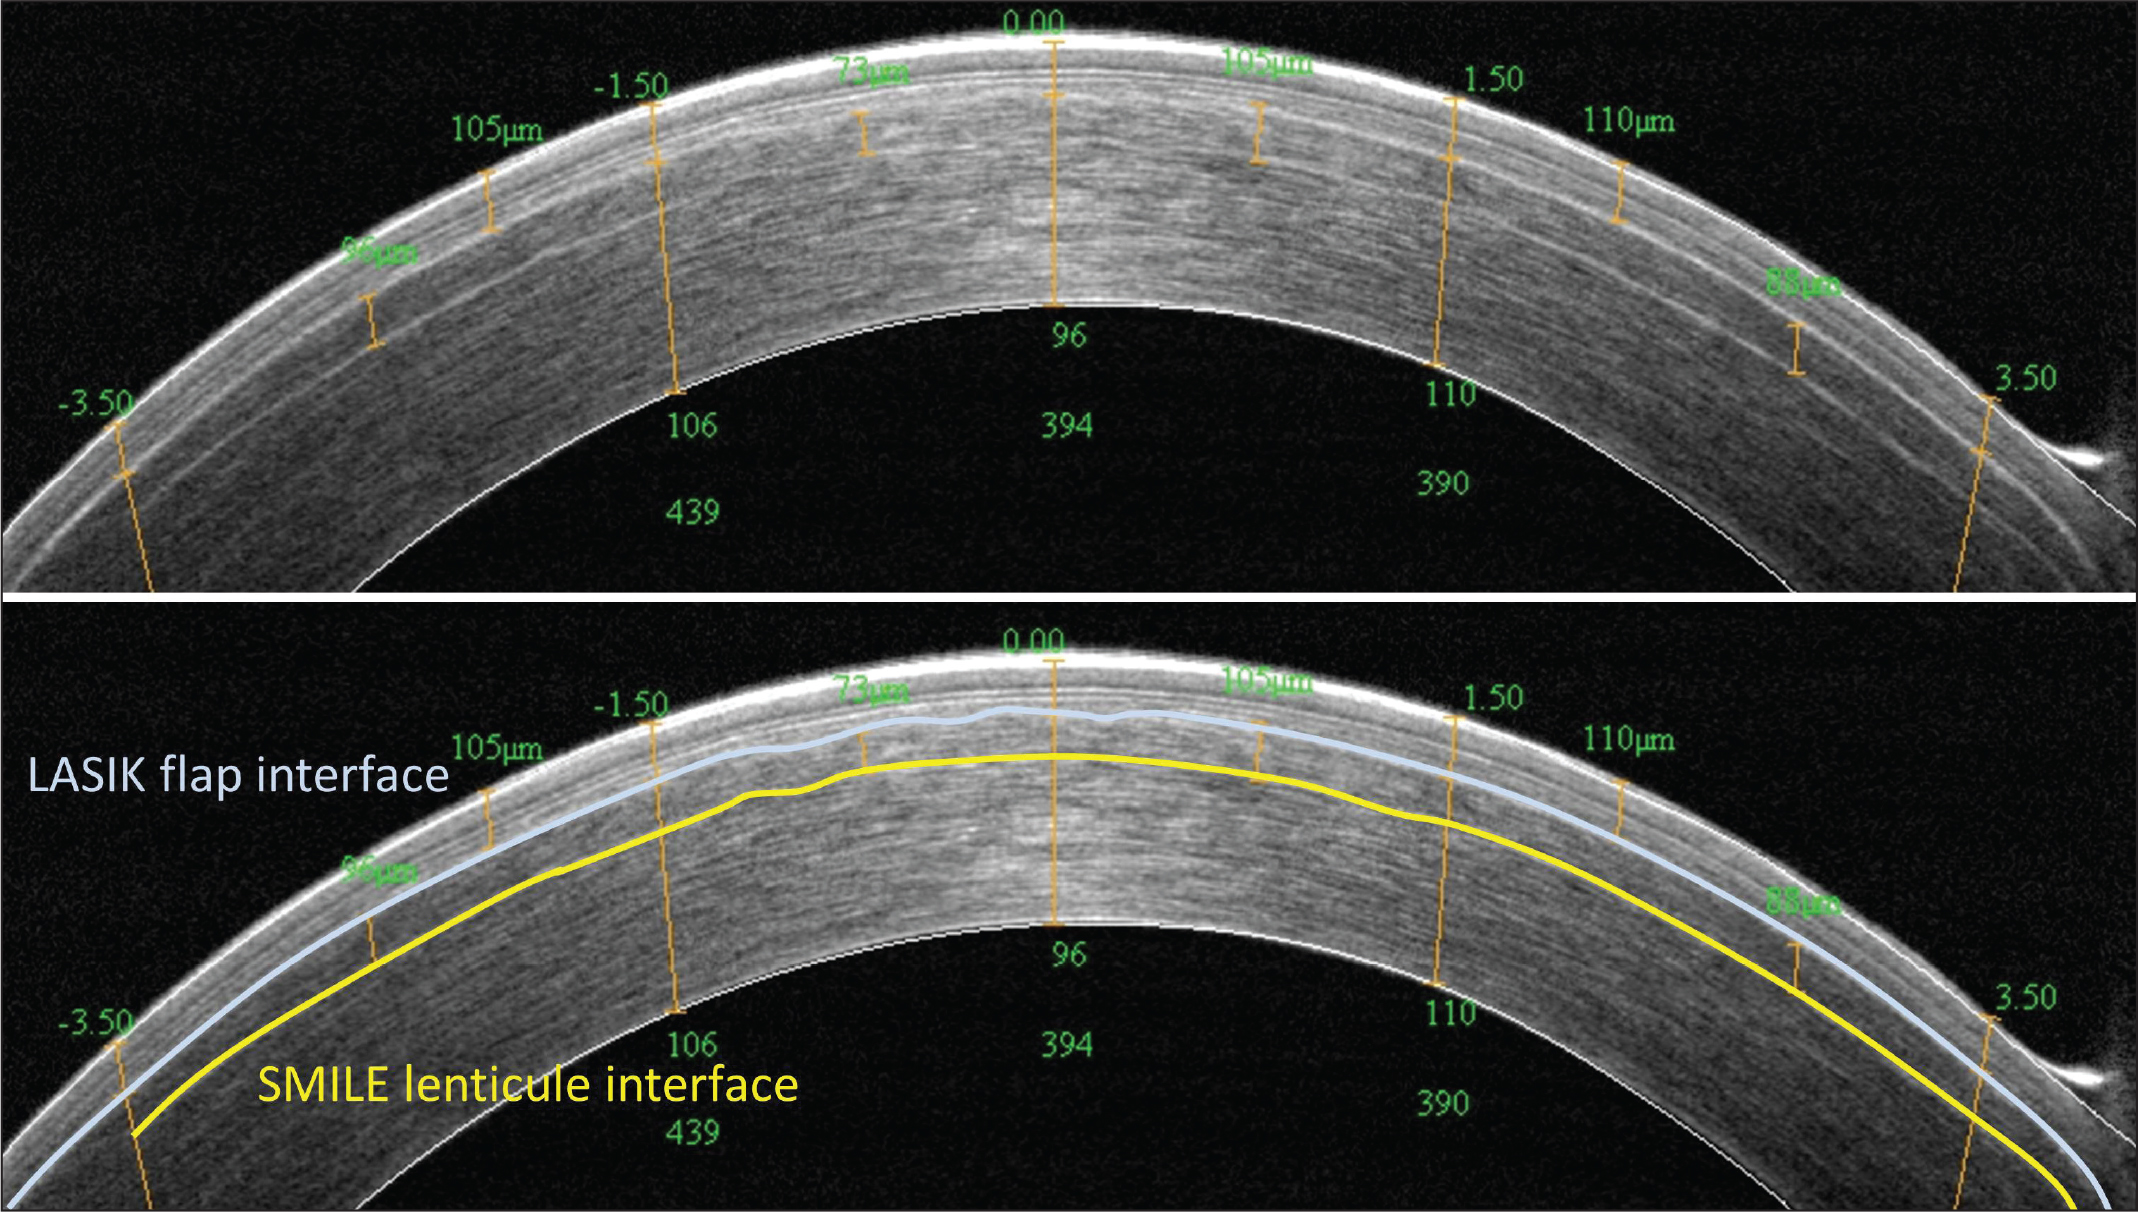 Optical coherence tomography B-scan (vertical) immediately following treatment in which small incision lenticule extraction (SMILE) was aborted due to significant eye movements creating discontinuities in the lenticule and cap interfaces. The treatment was converted to laser in situ keratomileusis (LASIK) using a 90-μm flap thickness, which was successfully completed. The two interfaces were clearly visible, with both showing significant undulations caused by the eye movements during femtosecond laser cutting. These undulations would have resulted in an irregular lenticule if the SMILE procedure had been continued. However, a non-uniform LASIK flap does not affect the outcome because the flap fits together with the stromal bed in a lock-and-key fashion. Reprinted with permission from Reinstein DZ, Archer TJ, Carp GI. The Surgeon's Guide to SMILE: Small Incision Lenticule Extraction. Thorofare, NJ: SLACK Incorporated; 2018.